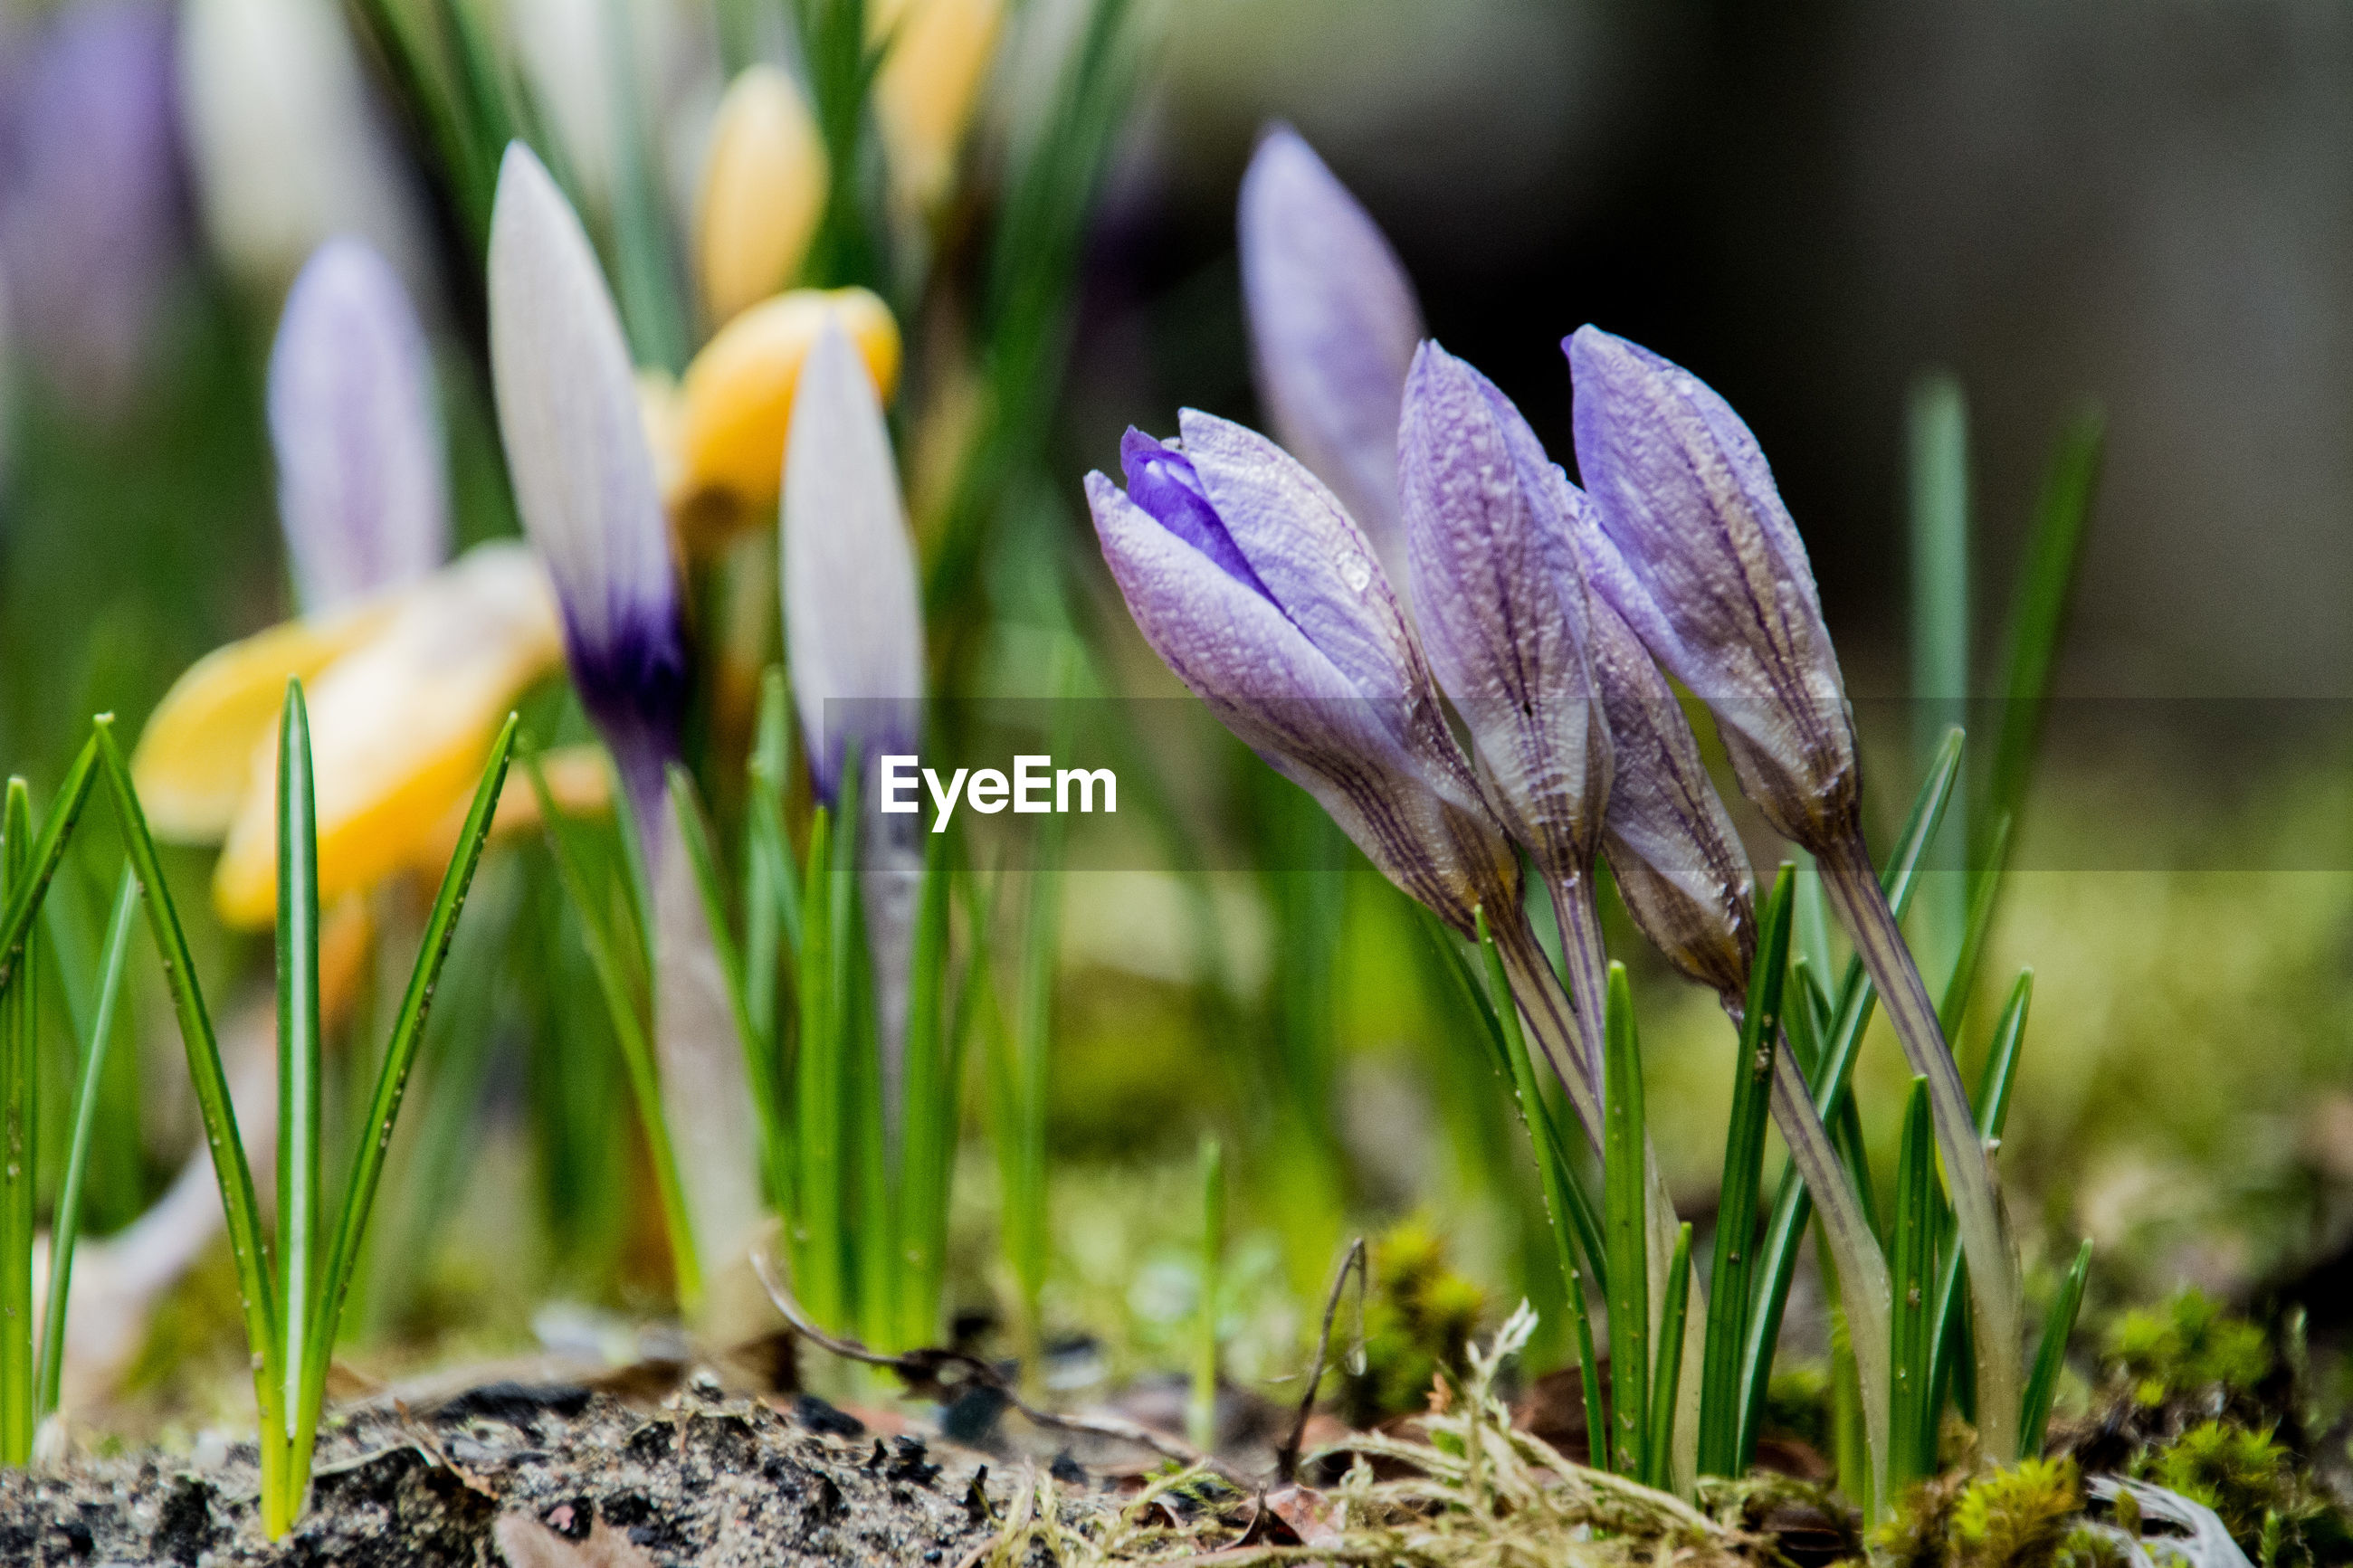 CLOSE-UP OF CROCUS BLOOMING IN FIELD